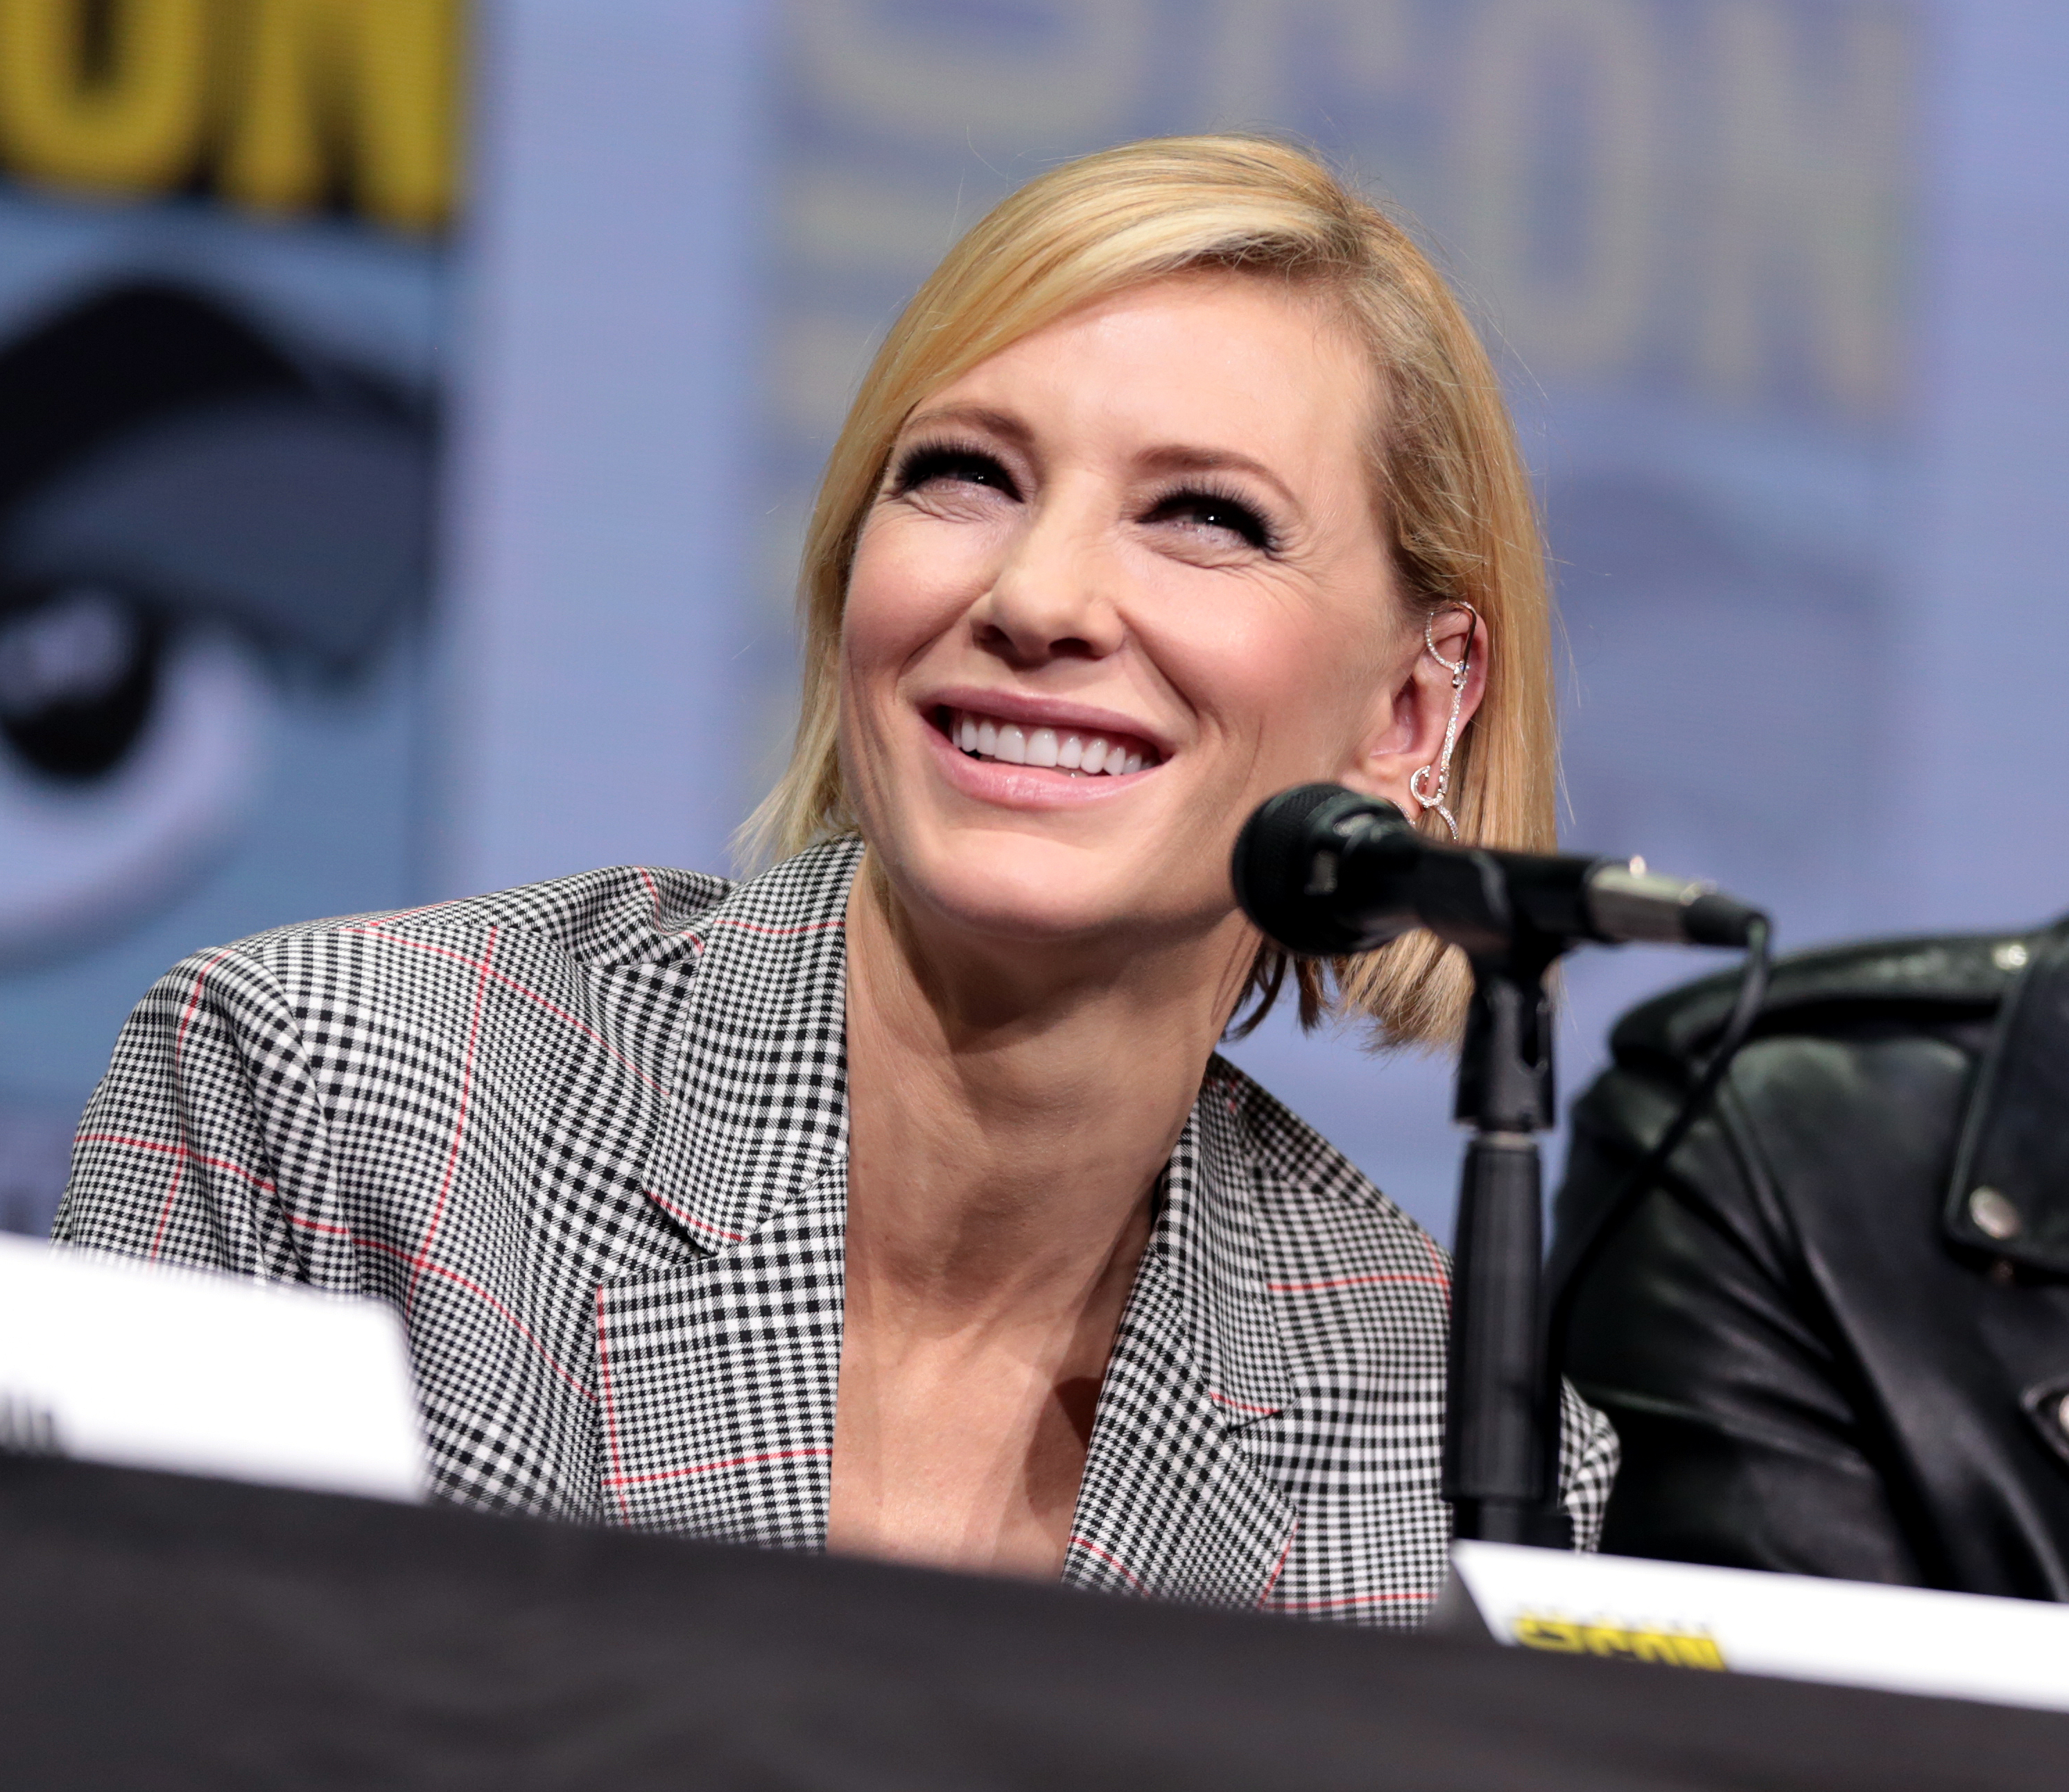 File:Cate Blanchett (36243178035) (cropped).jpg - Wikimedia Commons